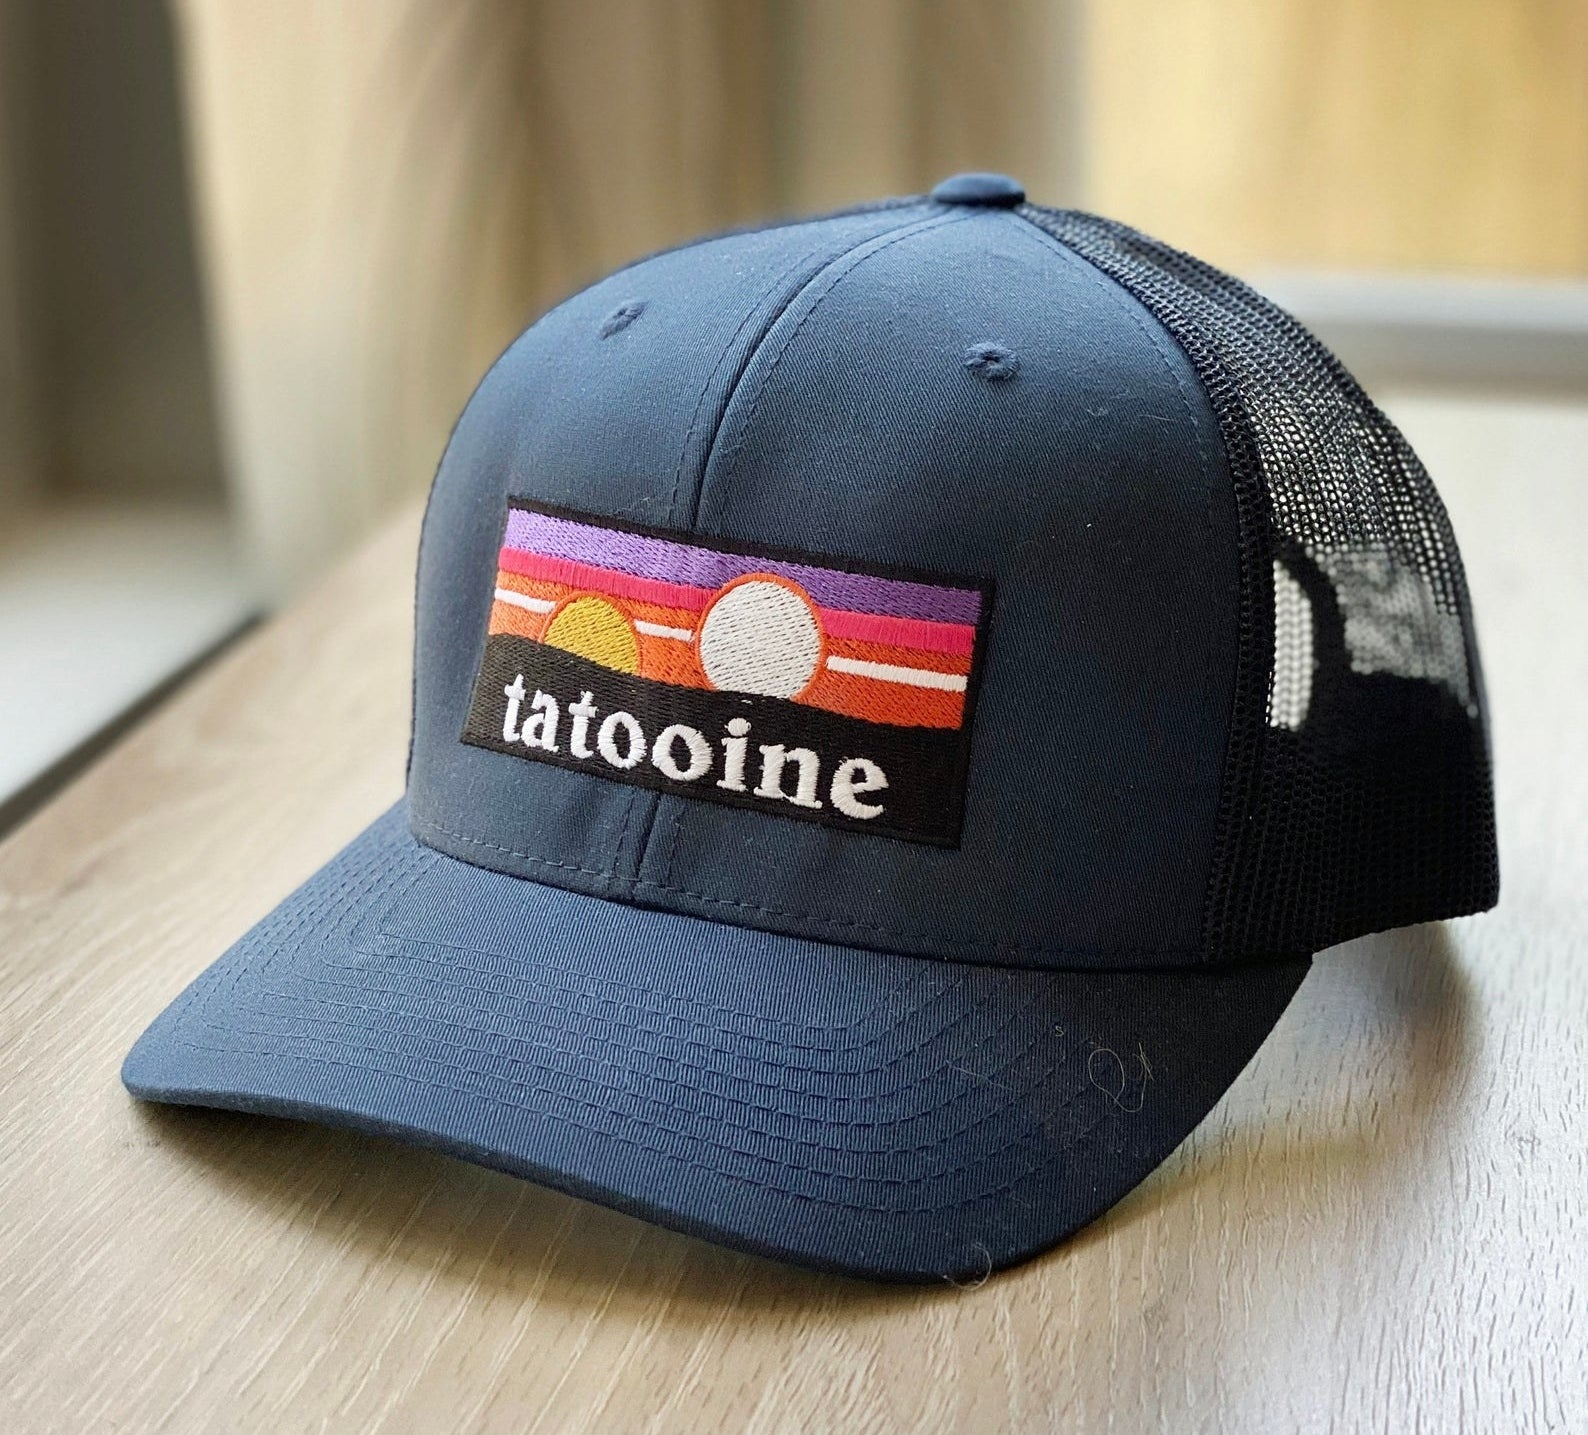 a black trucker hat with a logo of tatooine on it